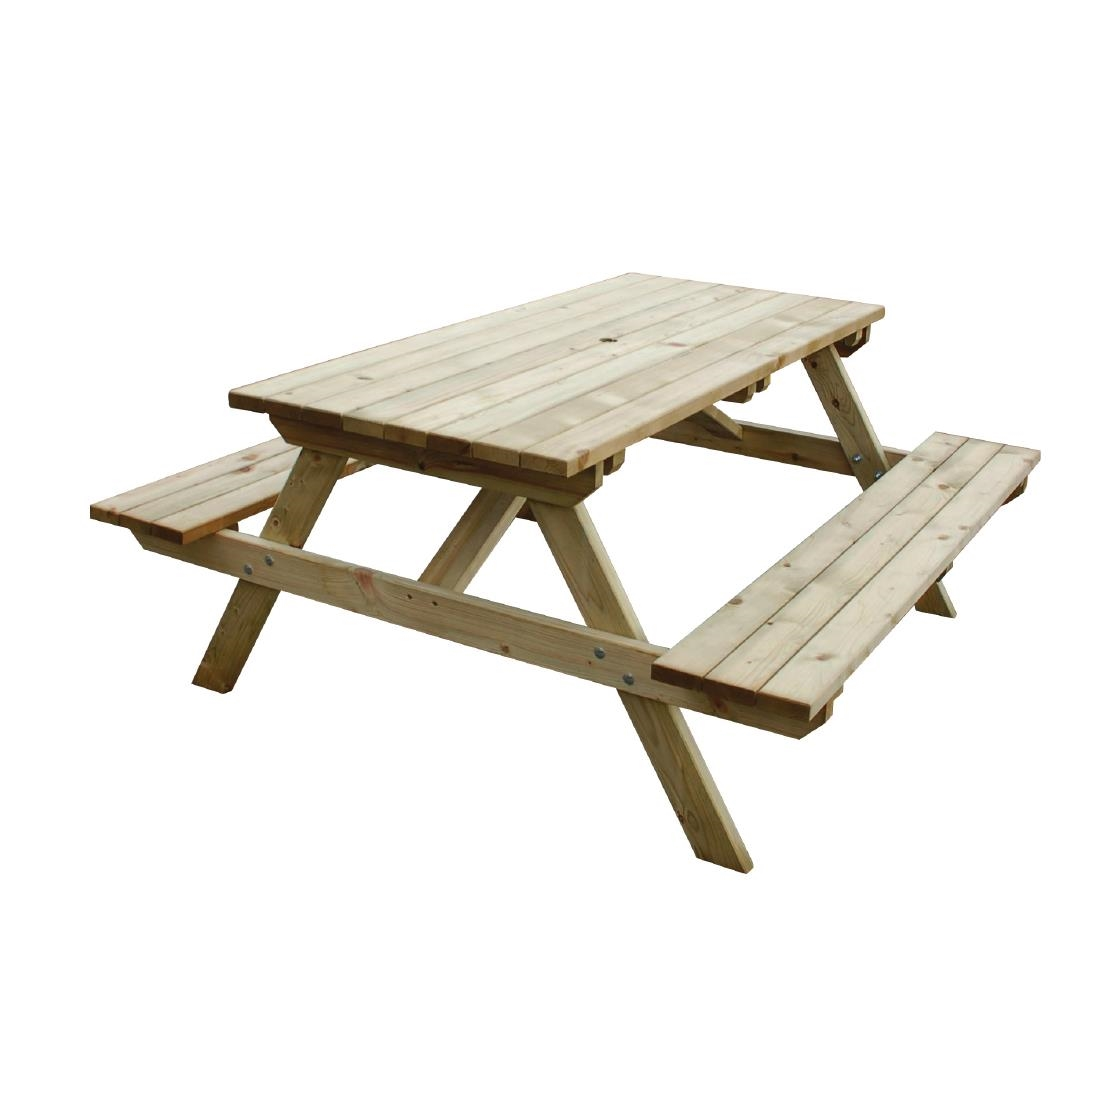 wooden picnic bench 5ft - cg095 - buy online at nisbets